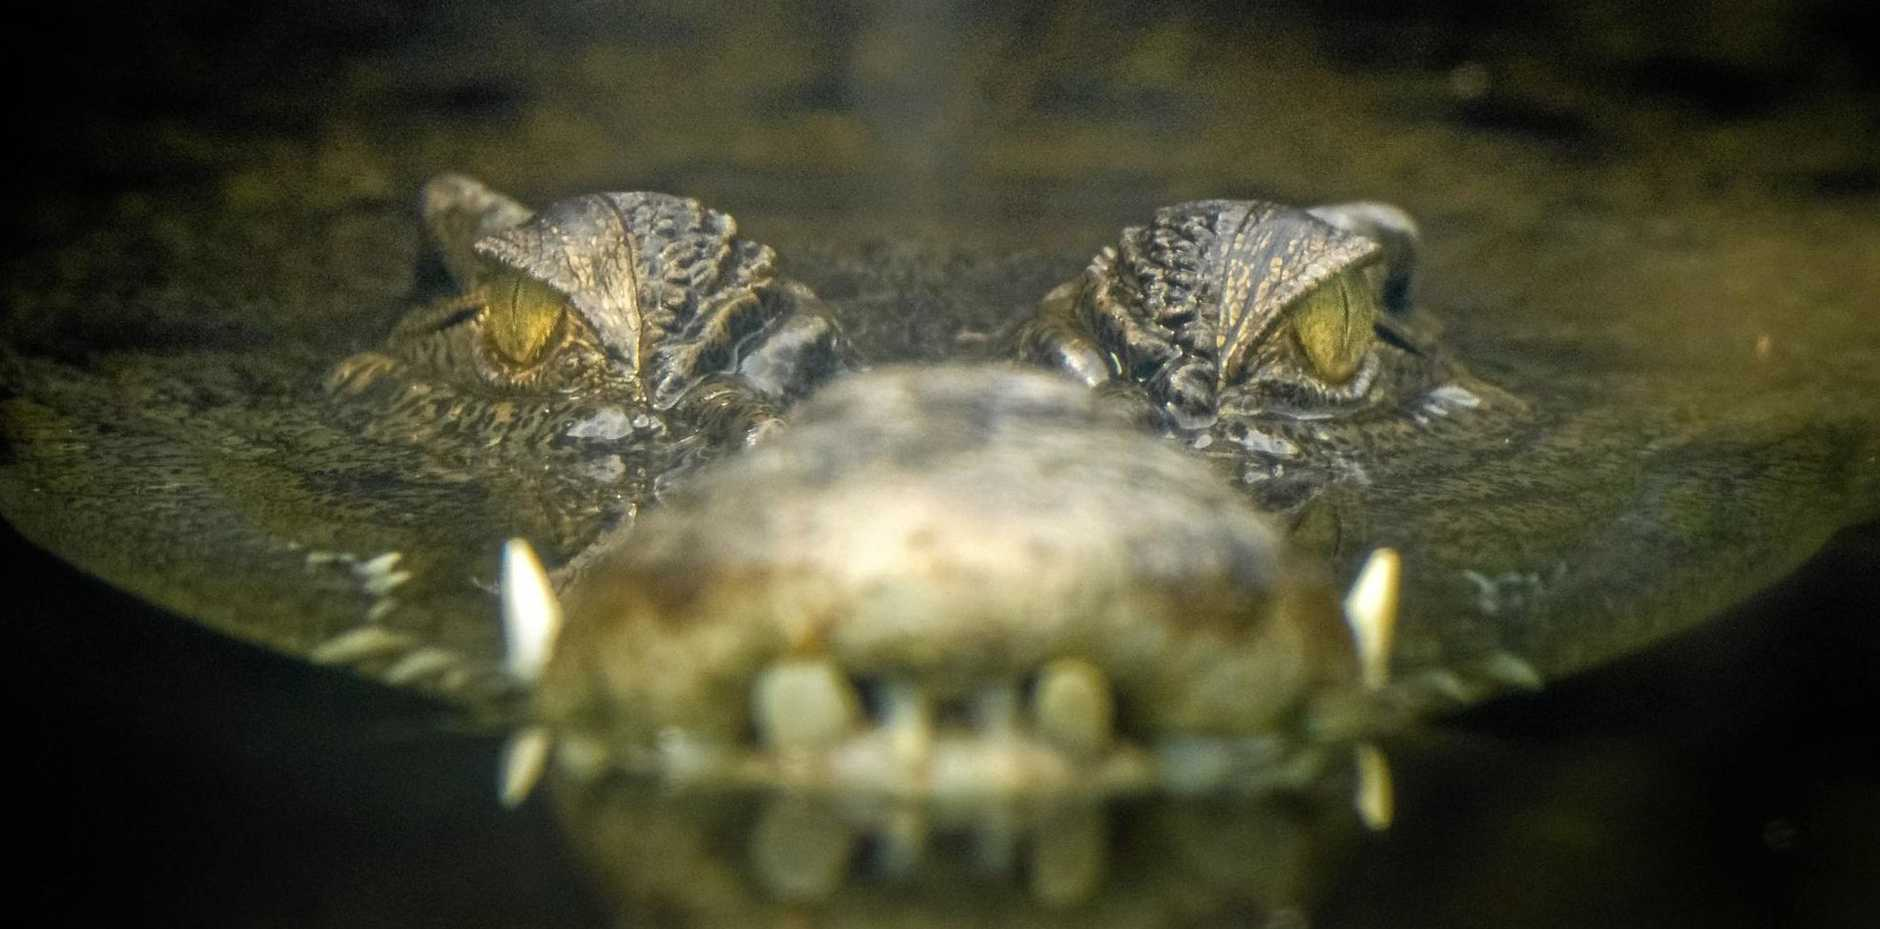 The saltwater crocodile (Crocodylus porosus) is the largest of all living reptiles, as well as the largest terrestrial and riparian predator in the world.